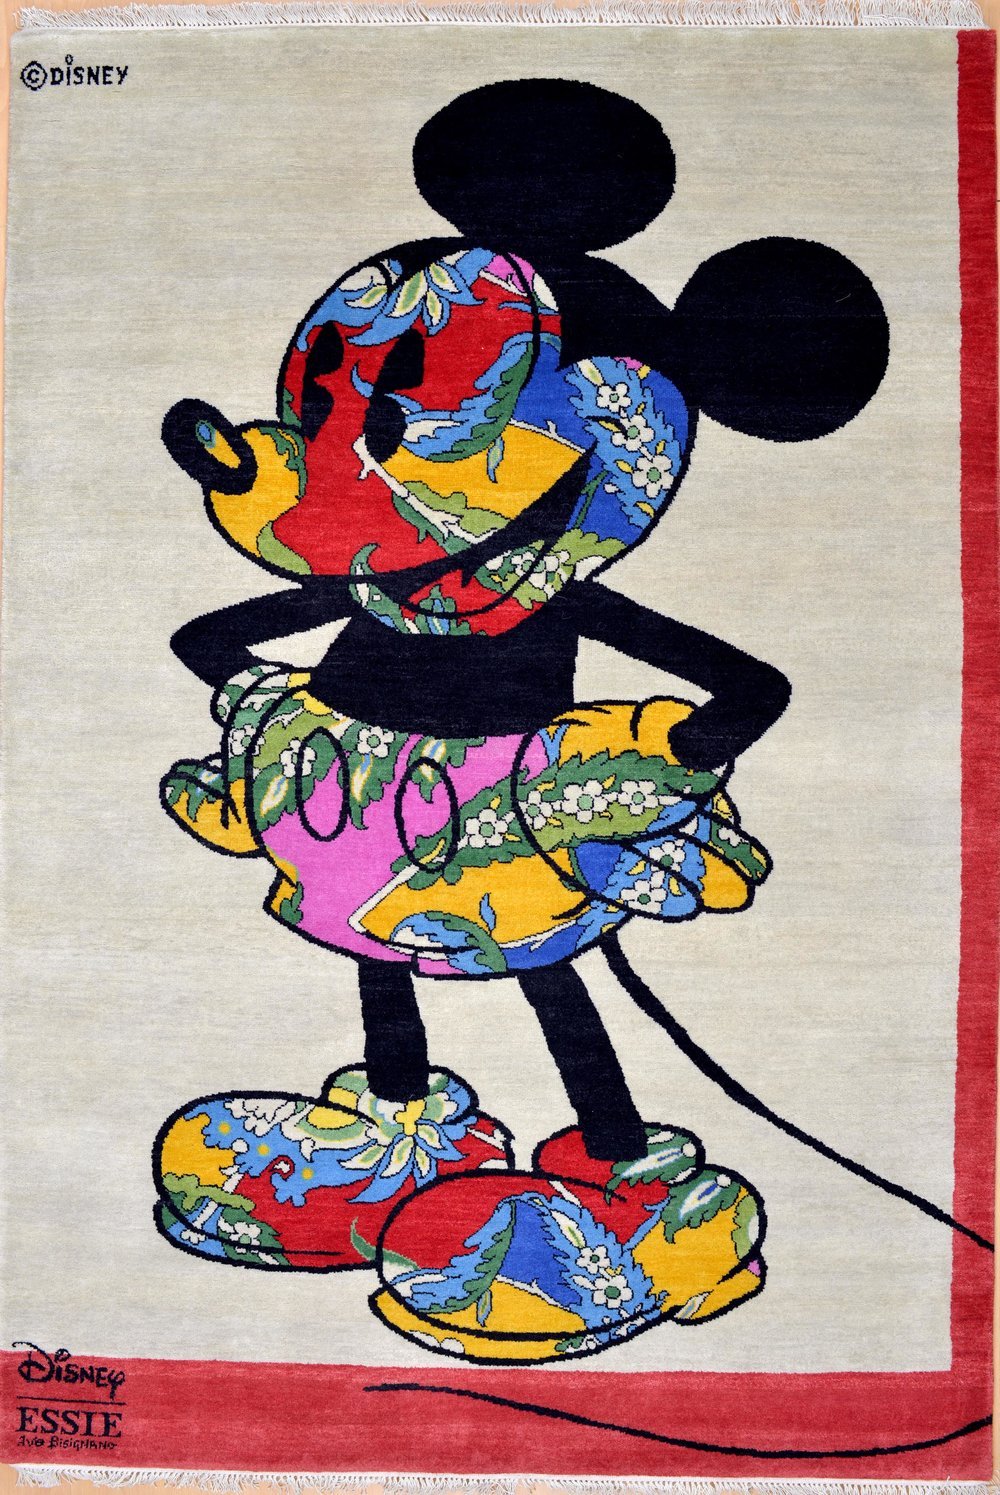 Handmade Disney Mickey Mouse Original at Essie carpets Mayfair London